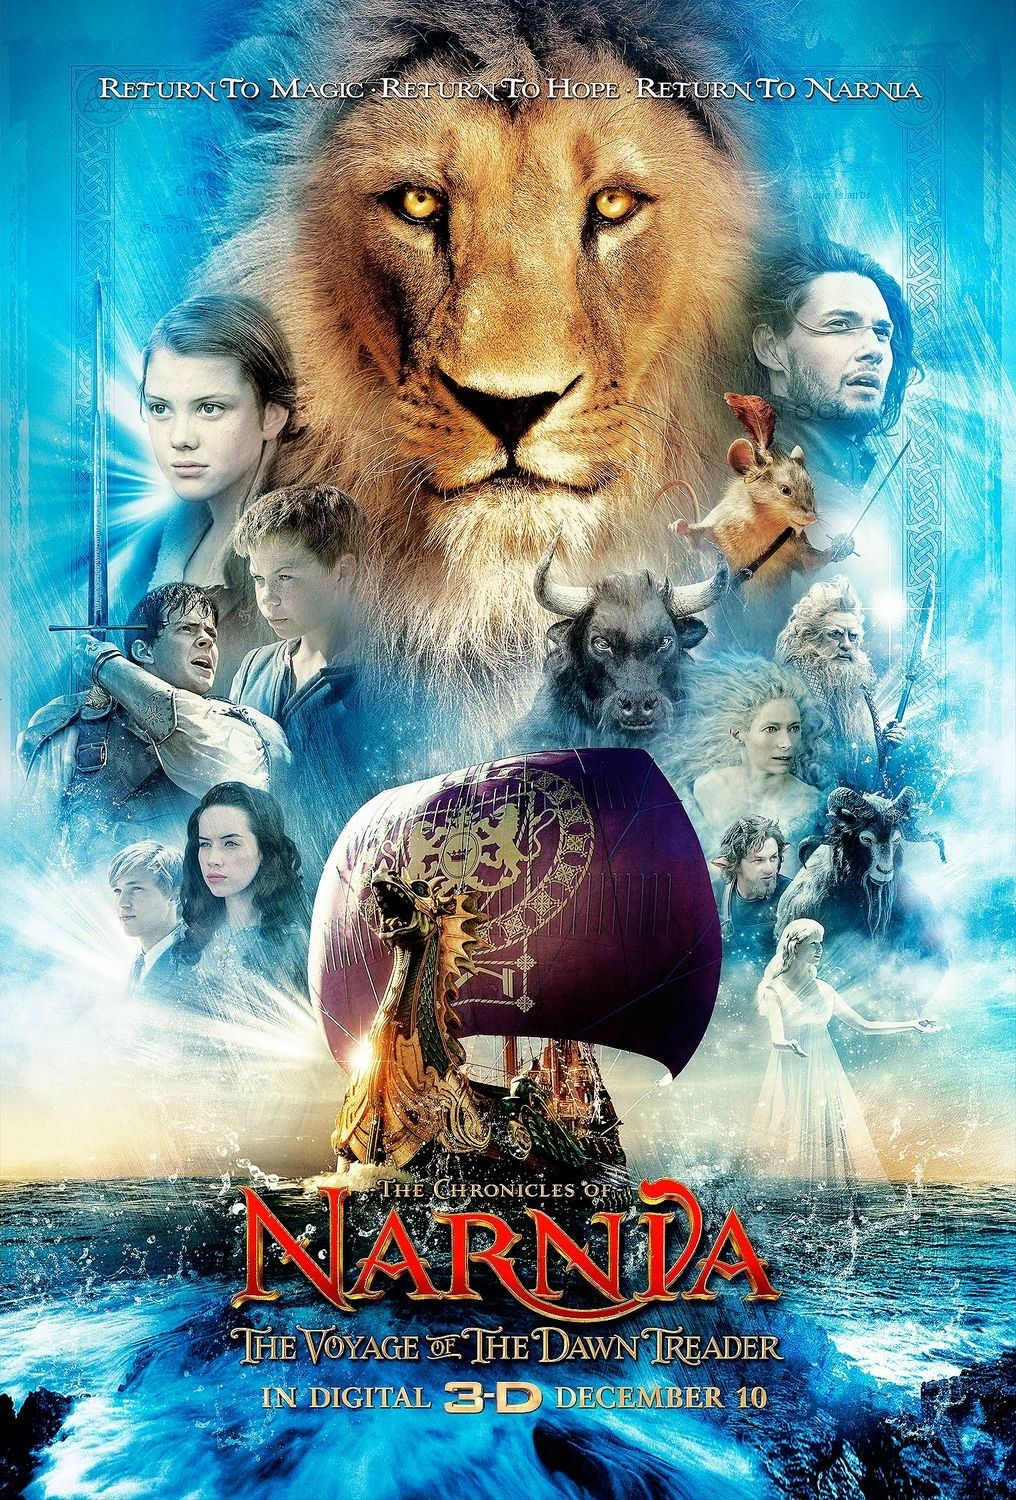 The Chronicles Of Narnia Read Them Narnia Las Cronicas De